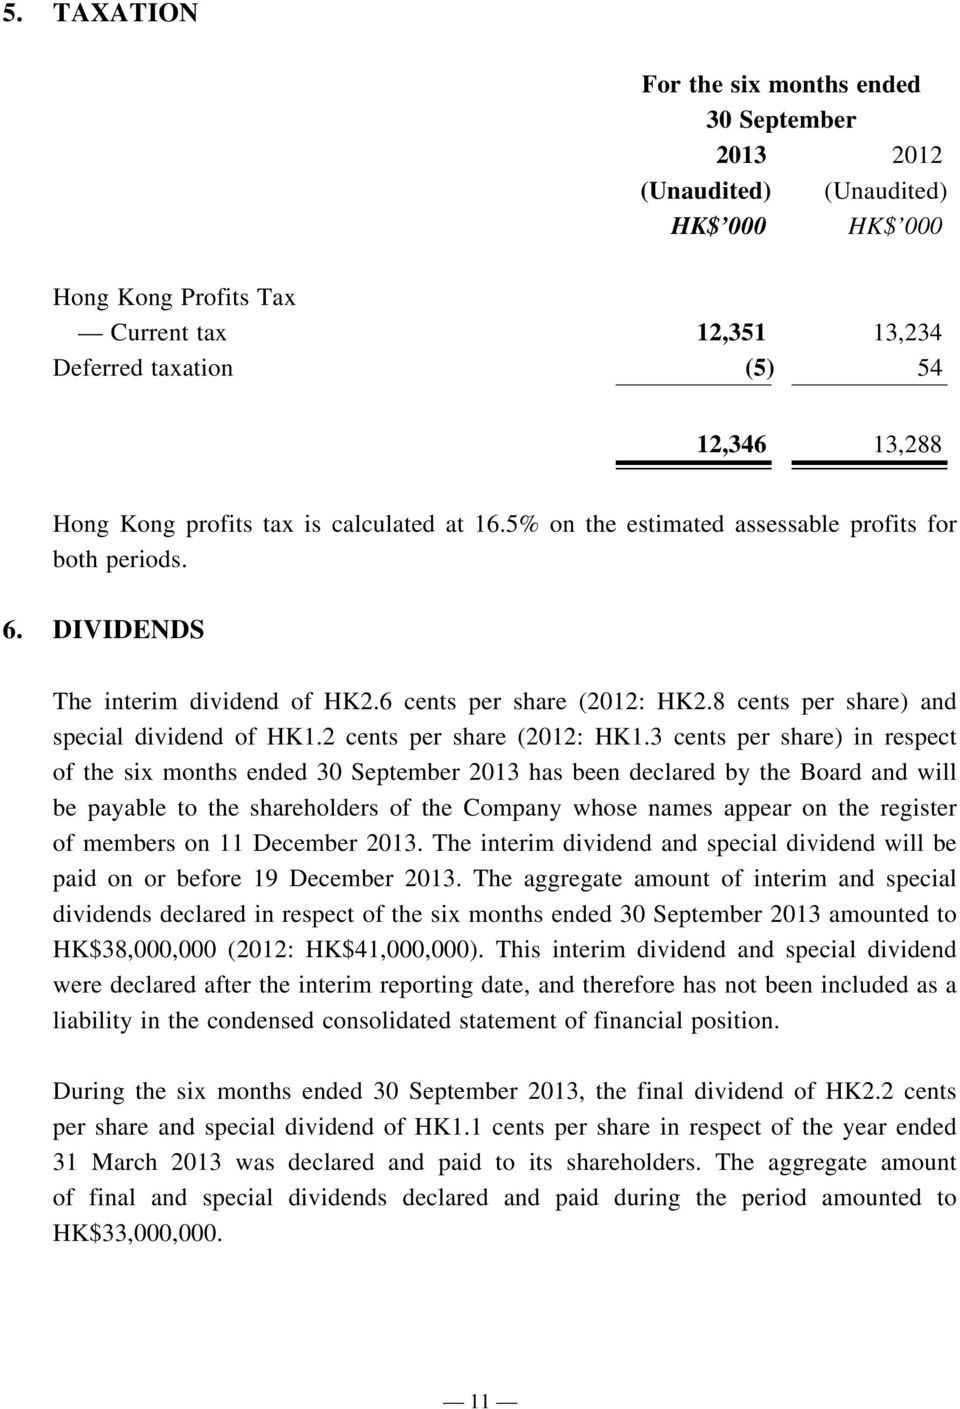 8 cents per share) and special dividend of HK1.2 cents per share (2012: HK1.